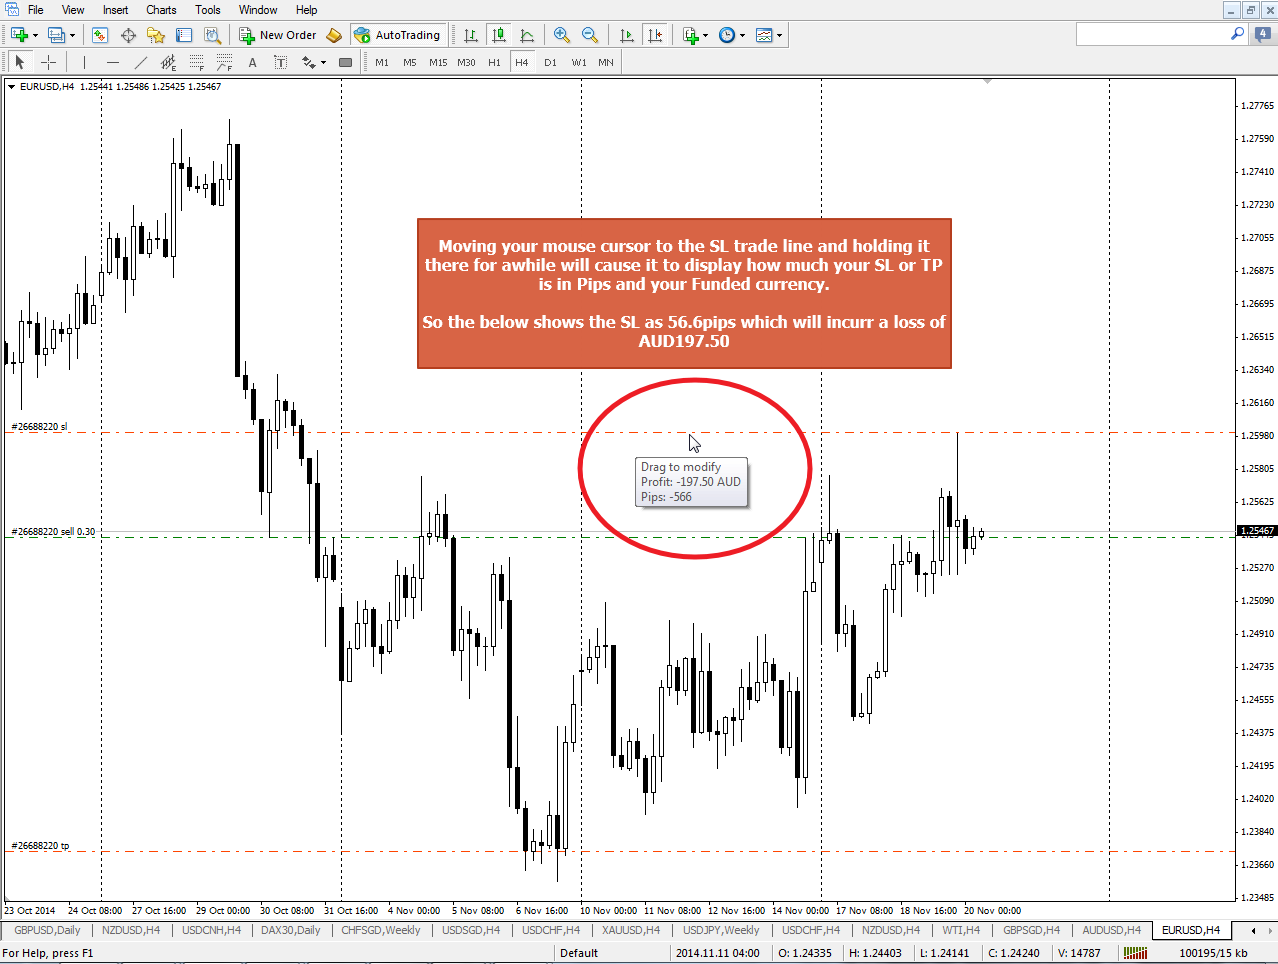 Find out your projected Gains and Loss in your funded currency